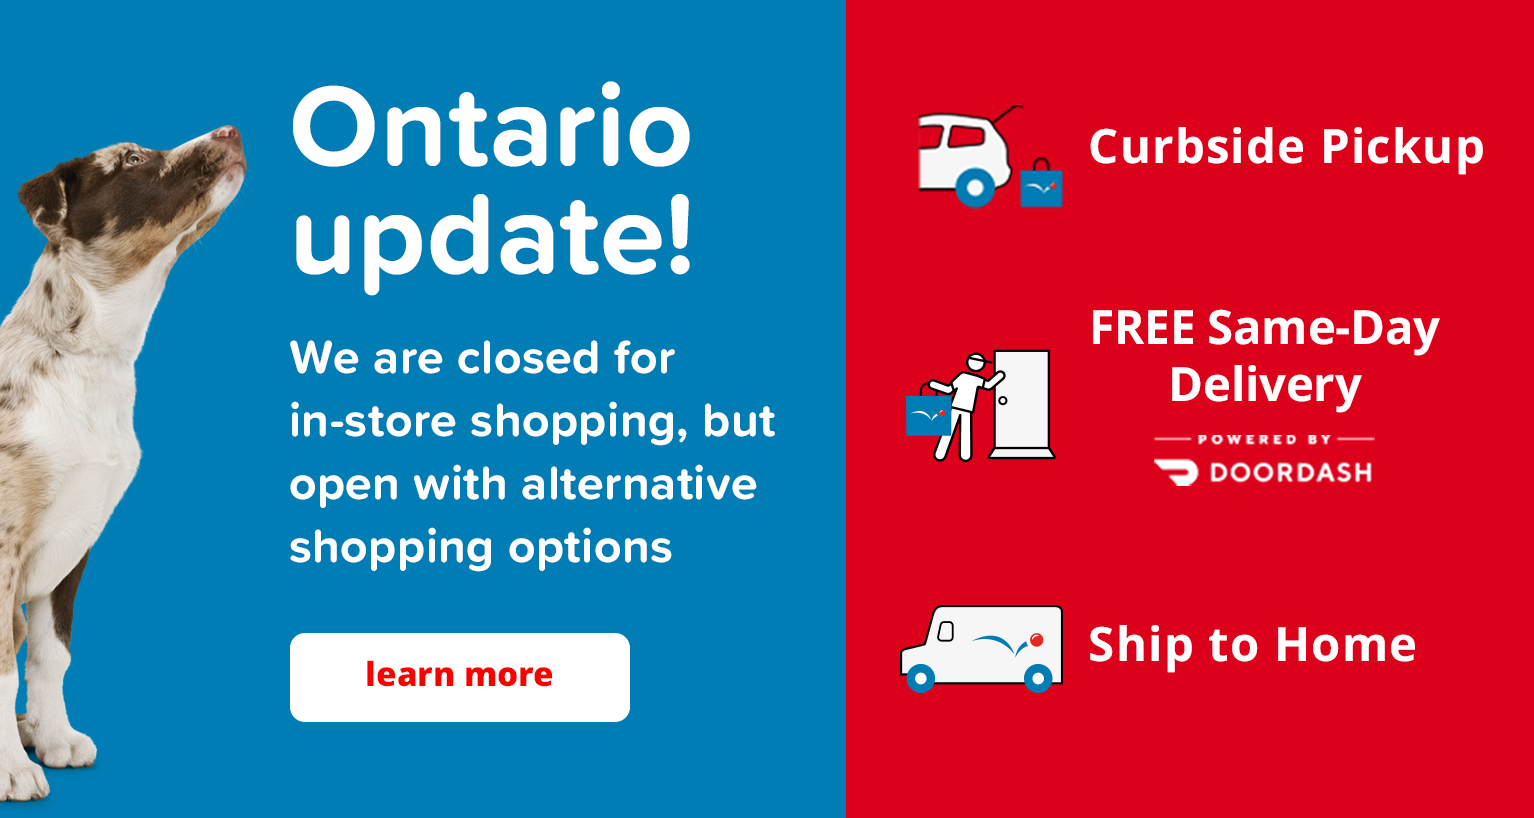 Ontario stores are open for curbside pickup, ship to home or same-day delivery.